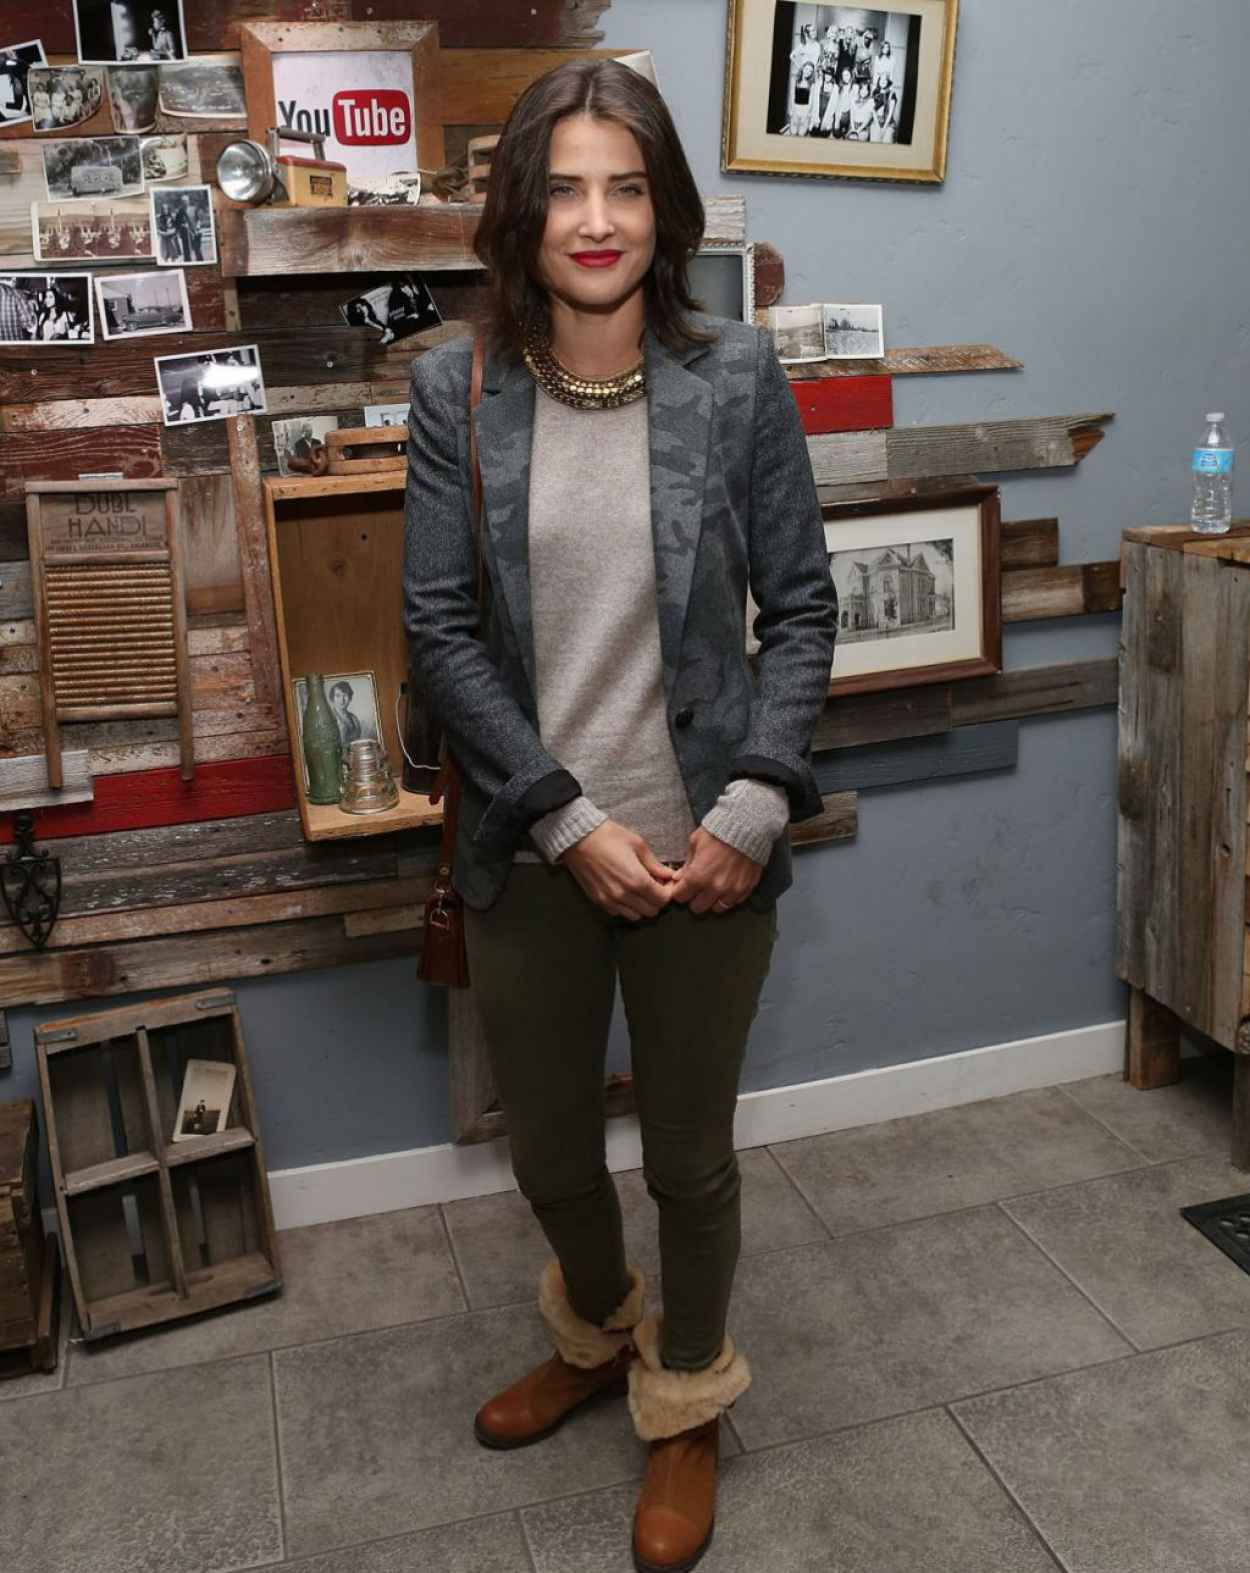 Cobie Smulders at YouTube Event for THEY CAME TOGETHER Premiere - Sundance Film Festival 2015-1